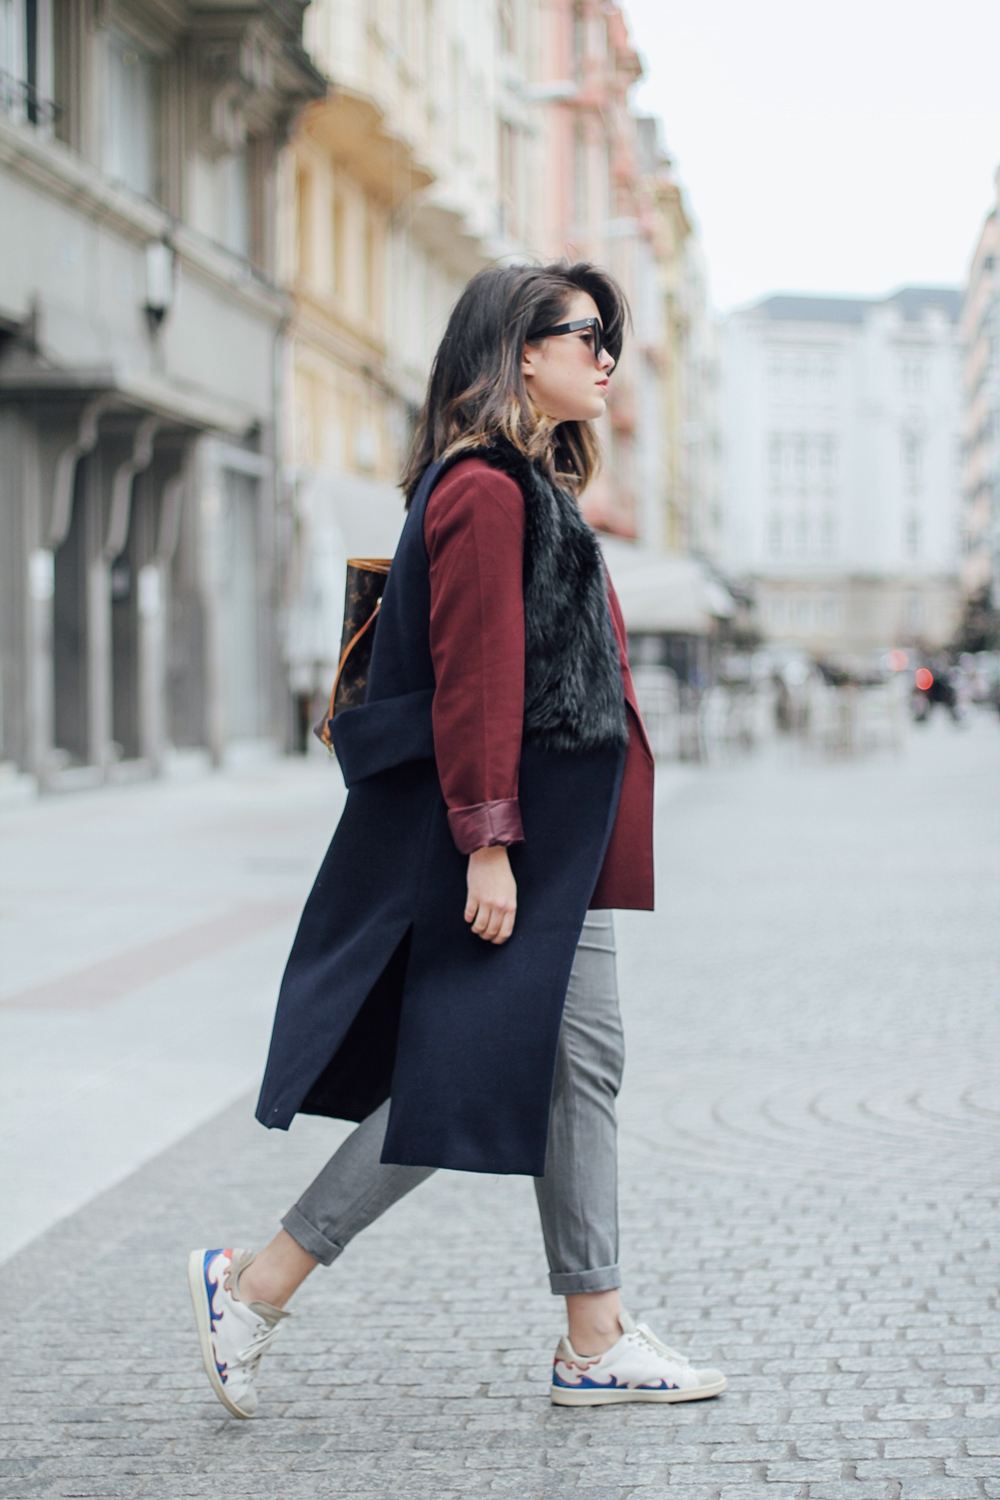 isabel marant sneakers with faux fur vest and red blazer streetstyle louis vuitton neverful